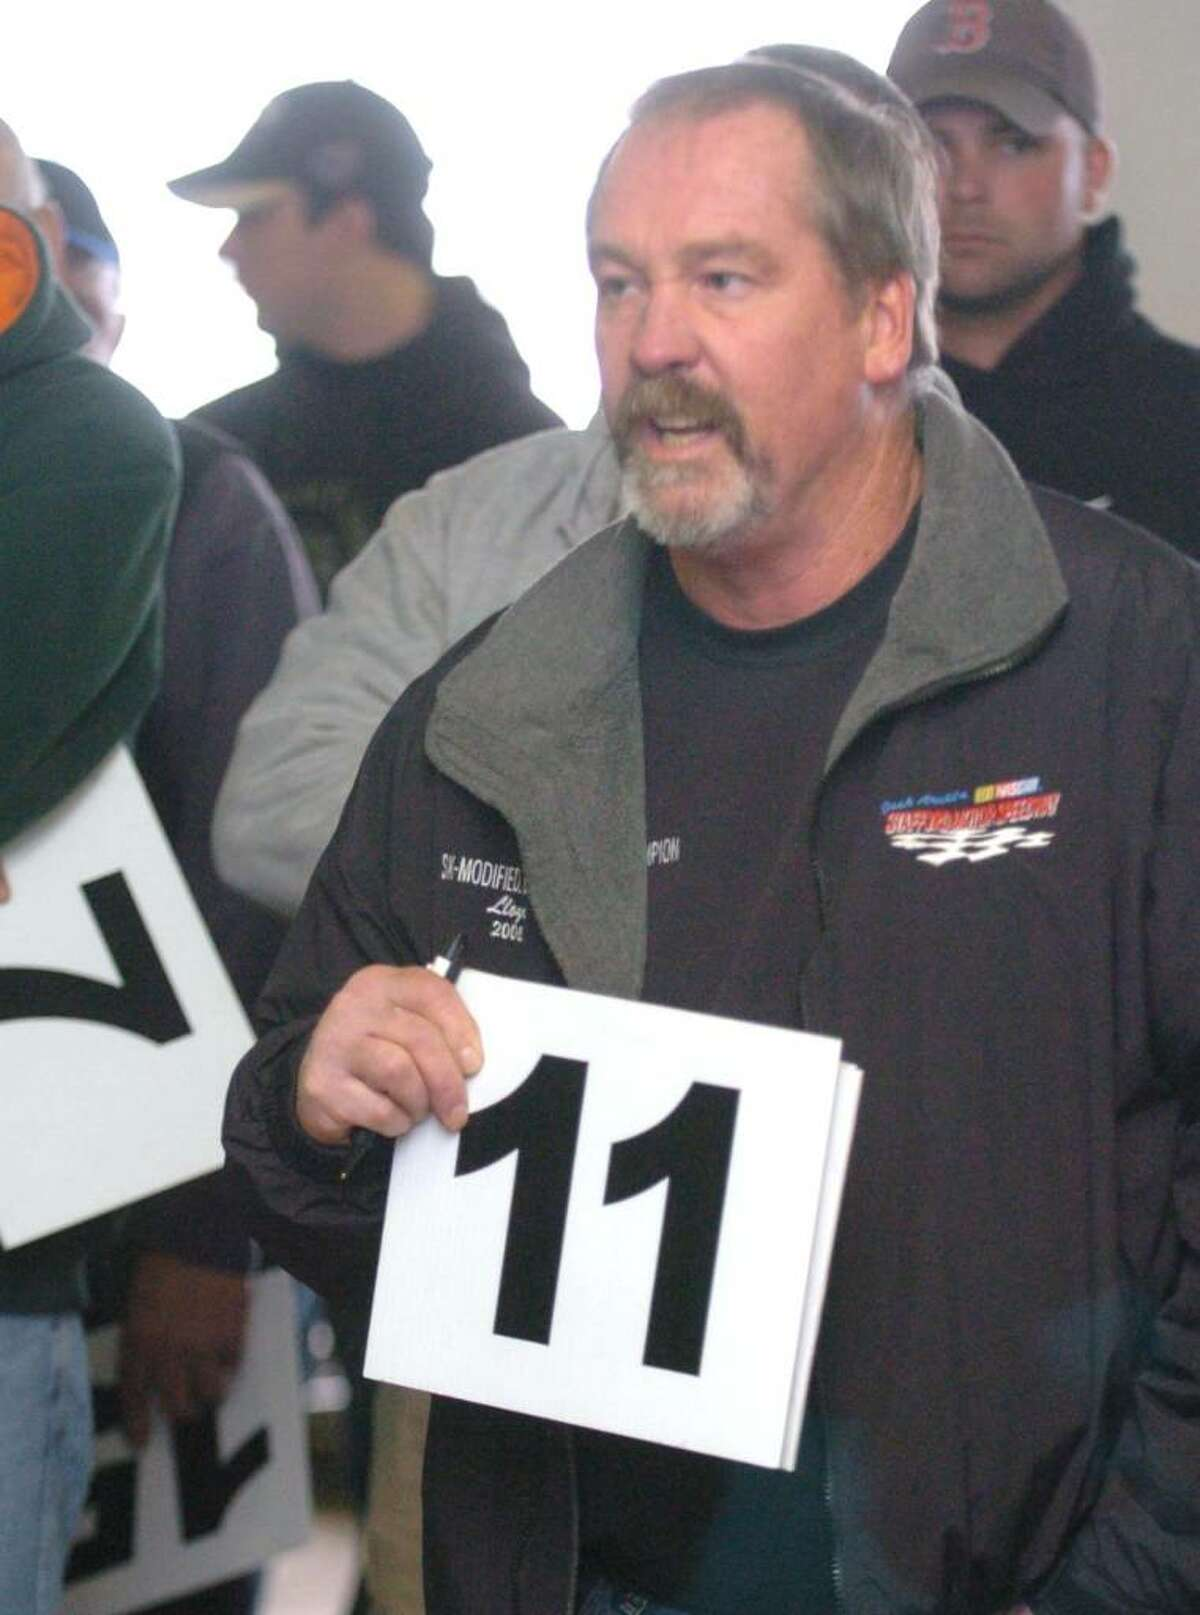 Lloyd Agor, of New Milford, bids on seized property of James Galante's at Metro Auto Body & Towing in Harford, CT, Friday, Nov. 6, 2009. The property consisted of racing cars and parts.